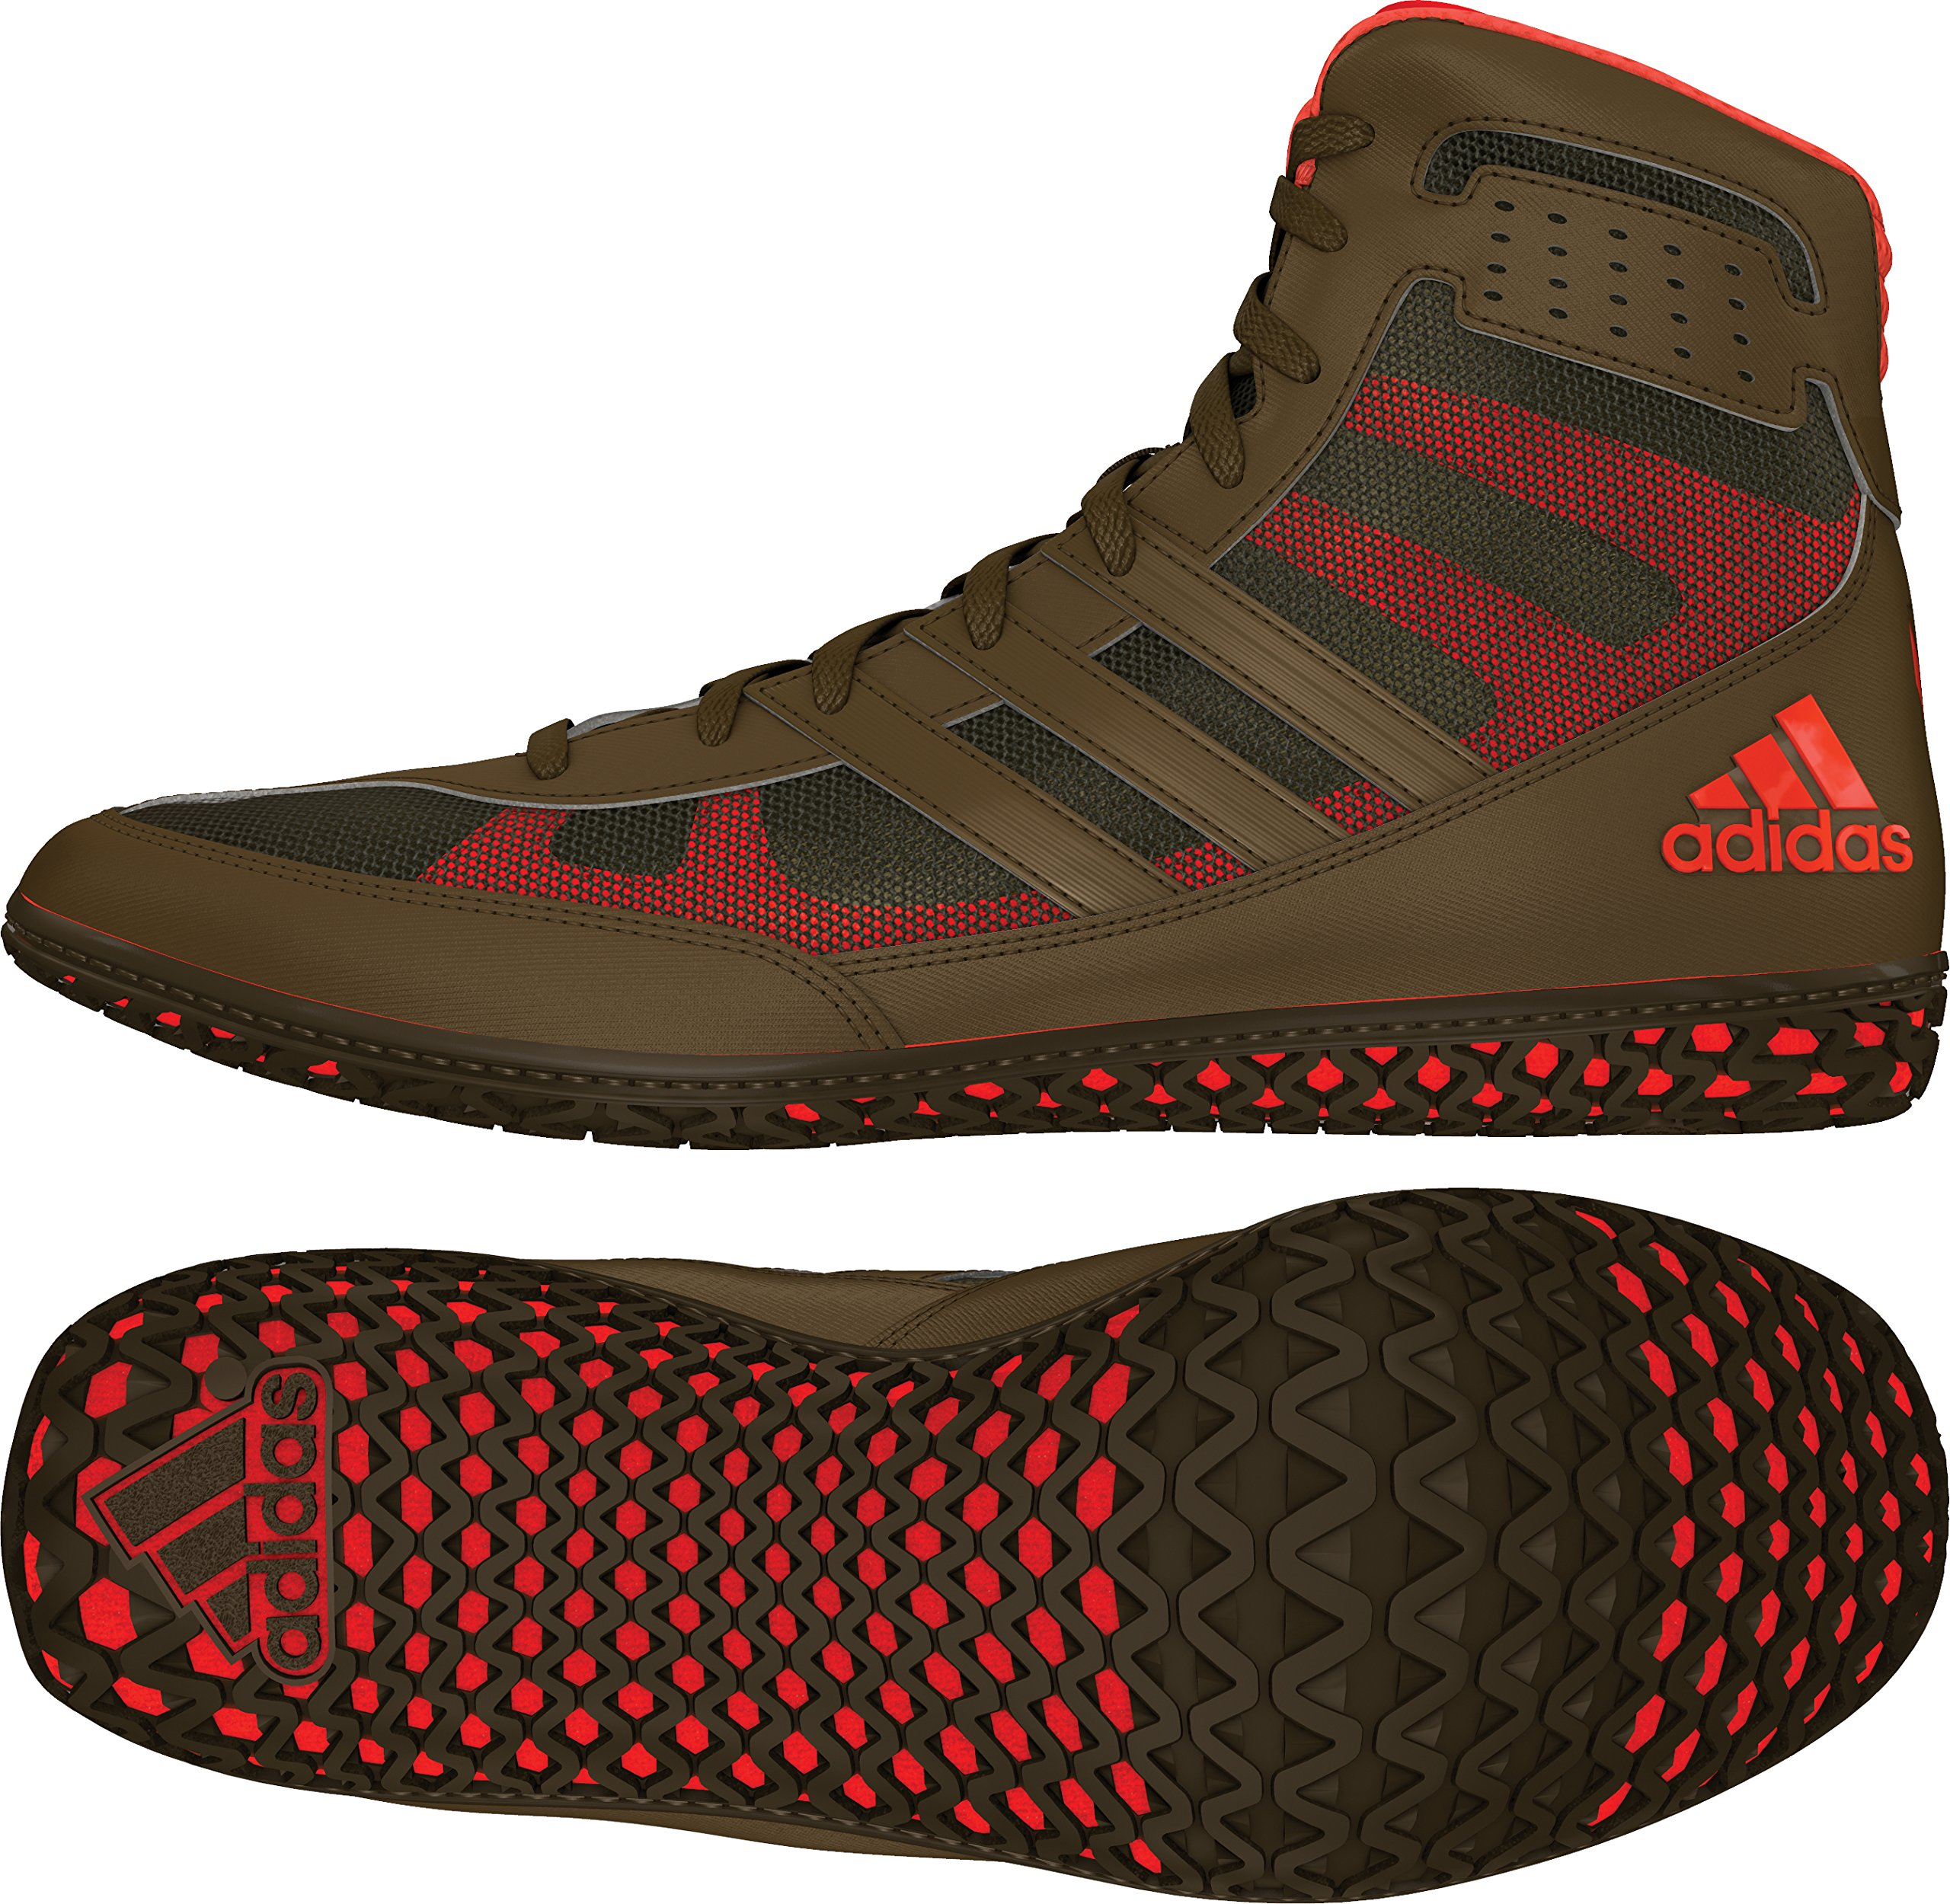 1efe9bb6acf8c2 Galleon - Adidas Mat Wizard David Taylor Edition Men s Wrestling Shoes